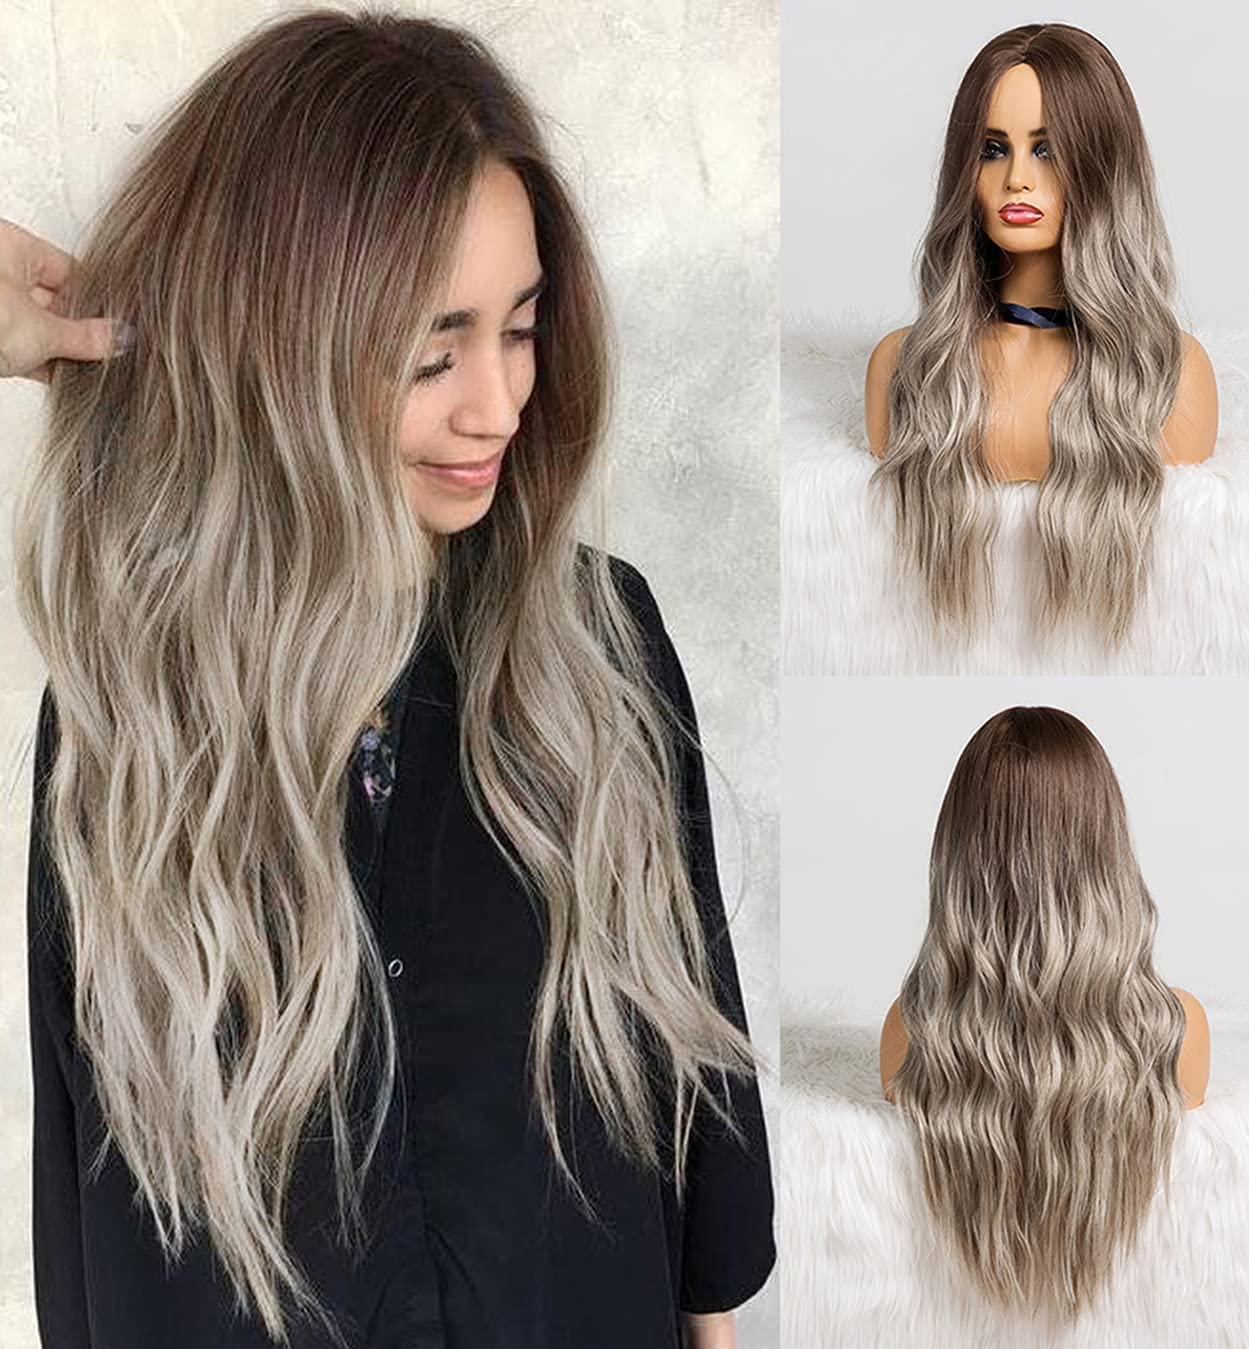 LEMEIZ Ombre Dark Brown to Ash Blonde Hair Wig Mixed Blonde Hair Wavy Wig Brown Roots Blonde Wigs uk Synthetic Afro Wigs 20 inch LEMEIZ-132